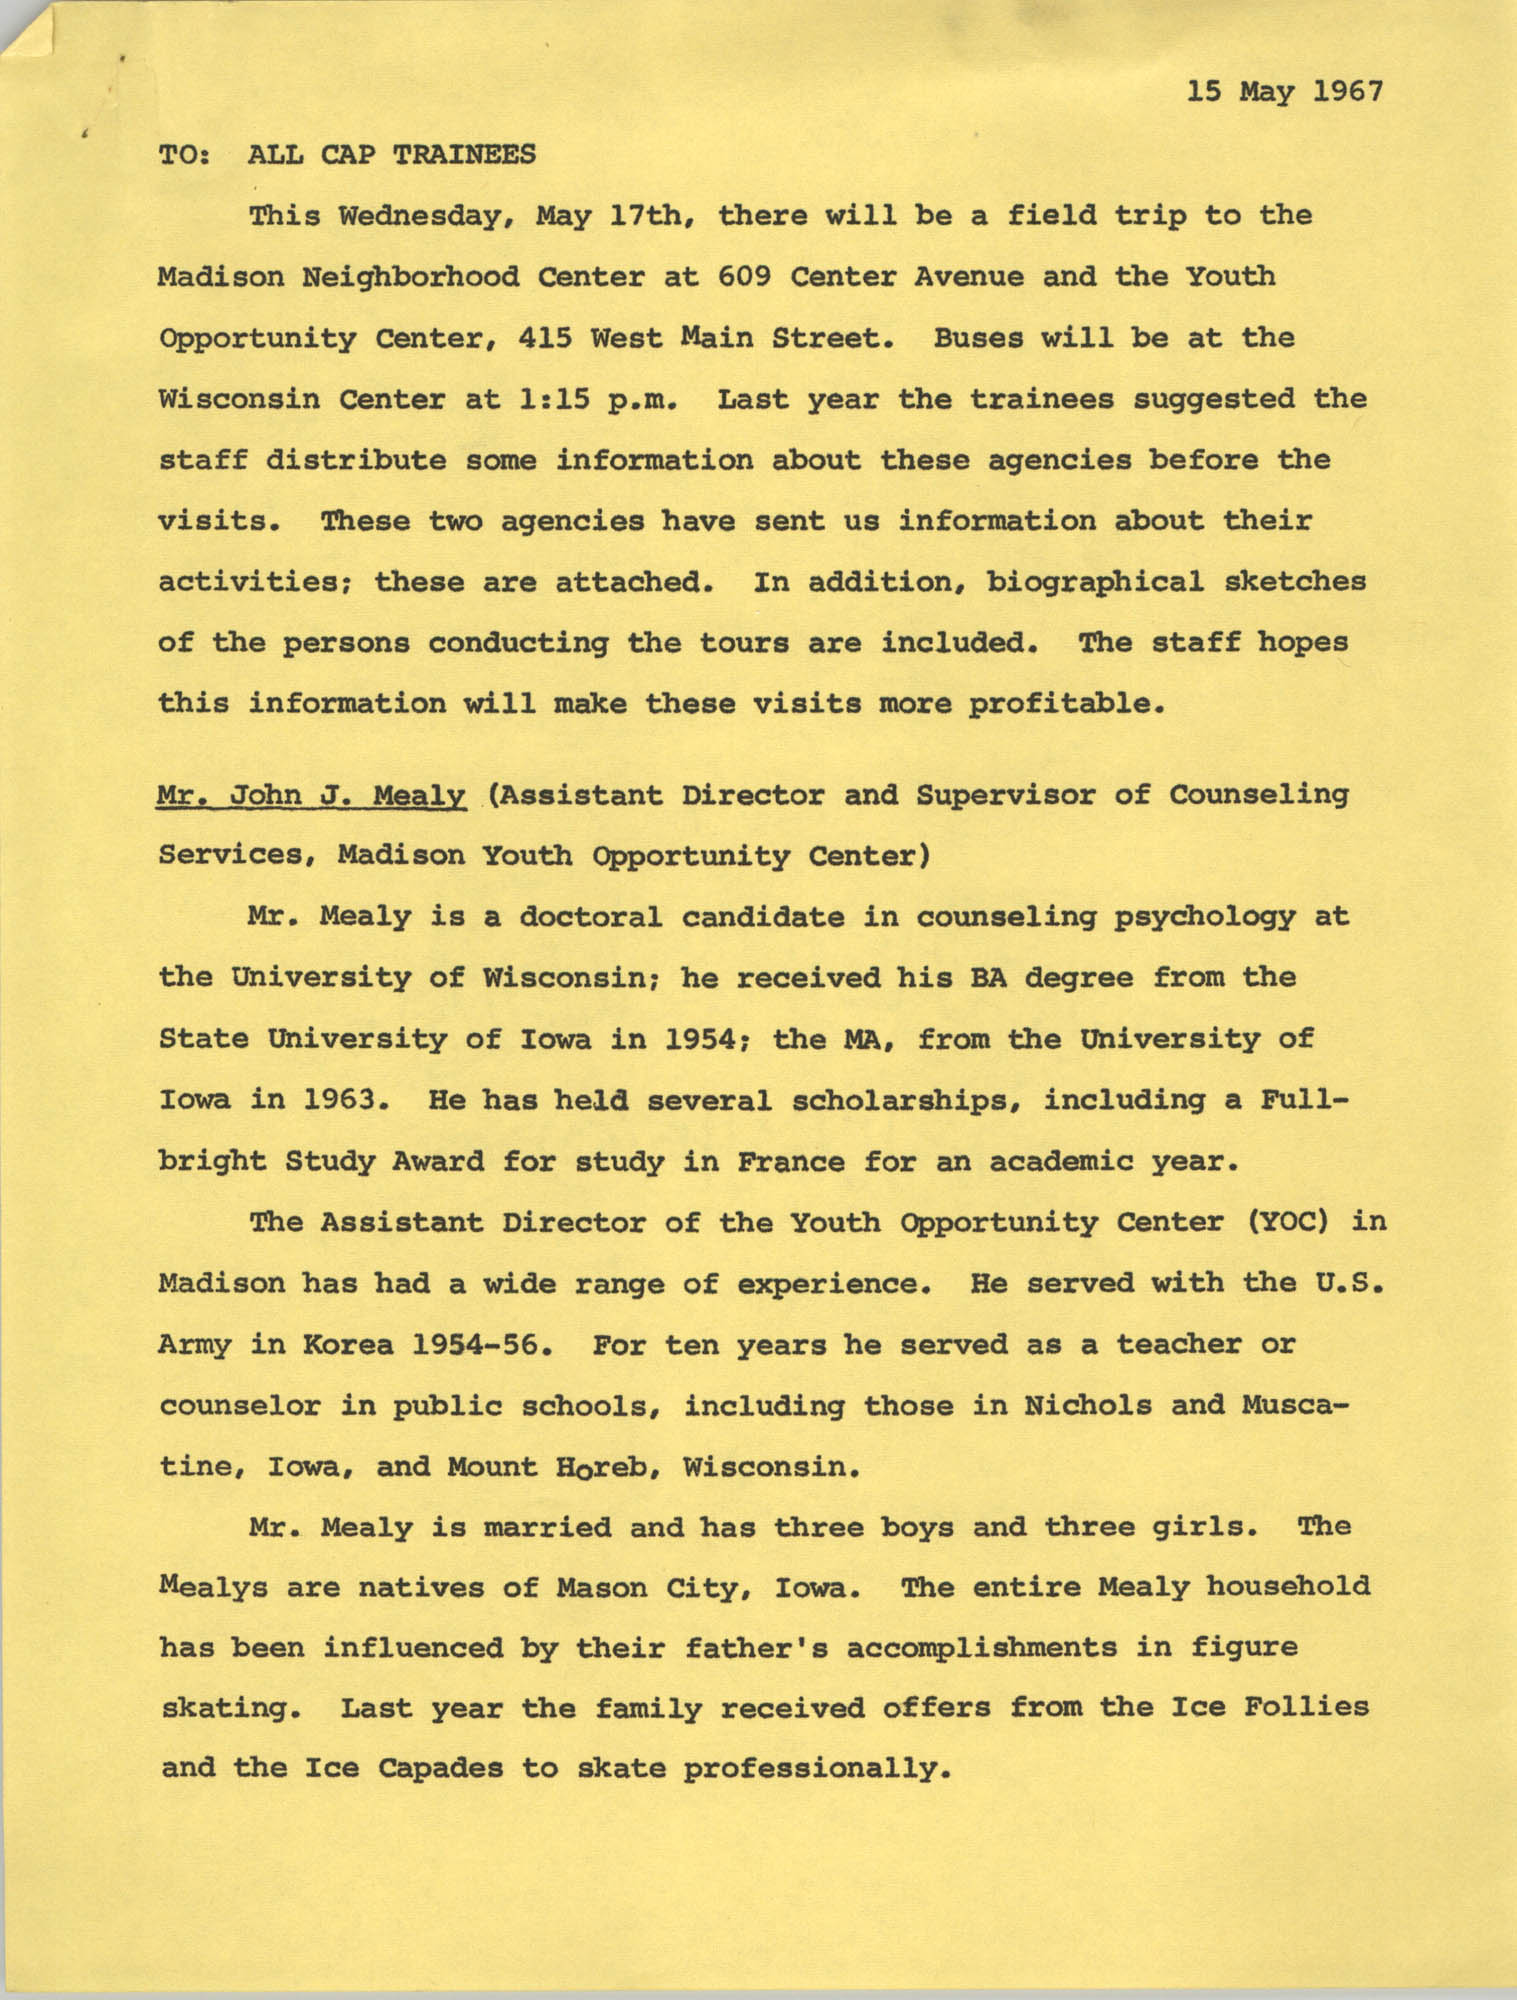 Memorandum from CAP Staff to All CAP Trainees, May 15, 1967